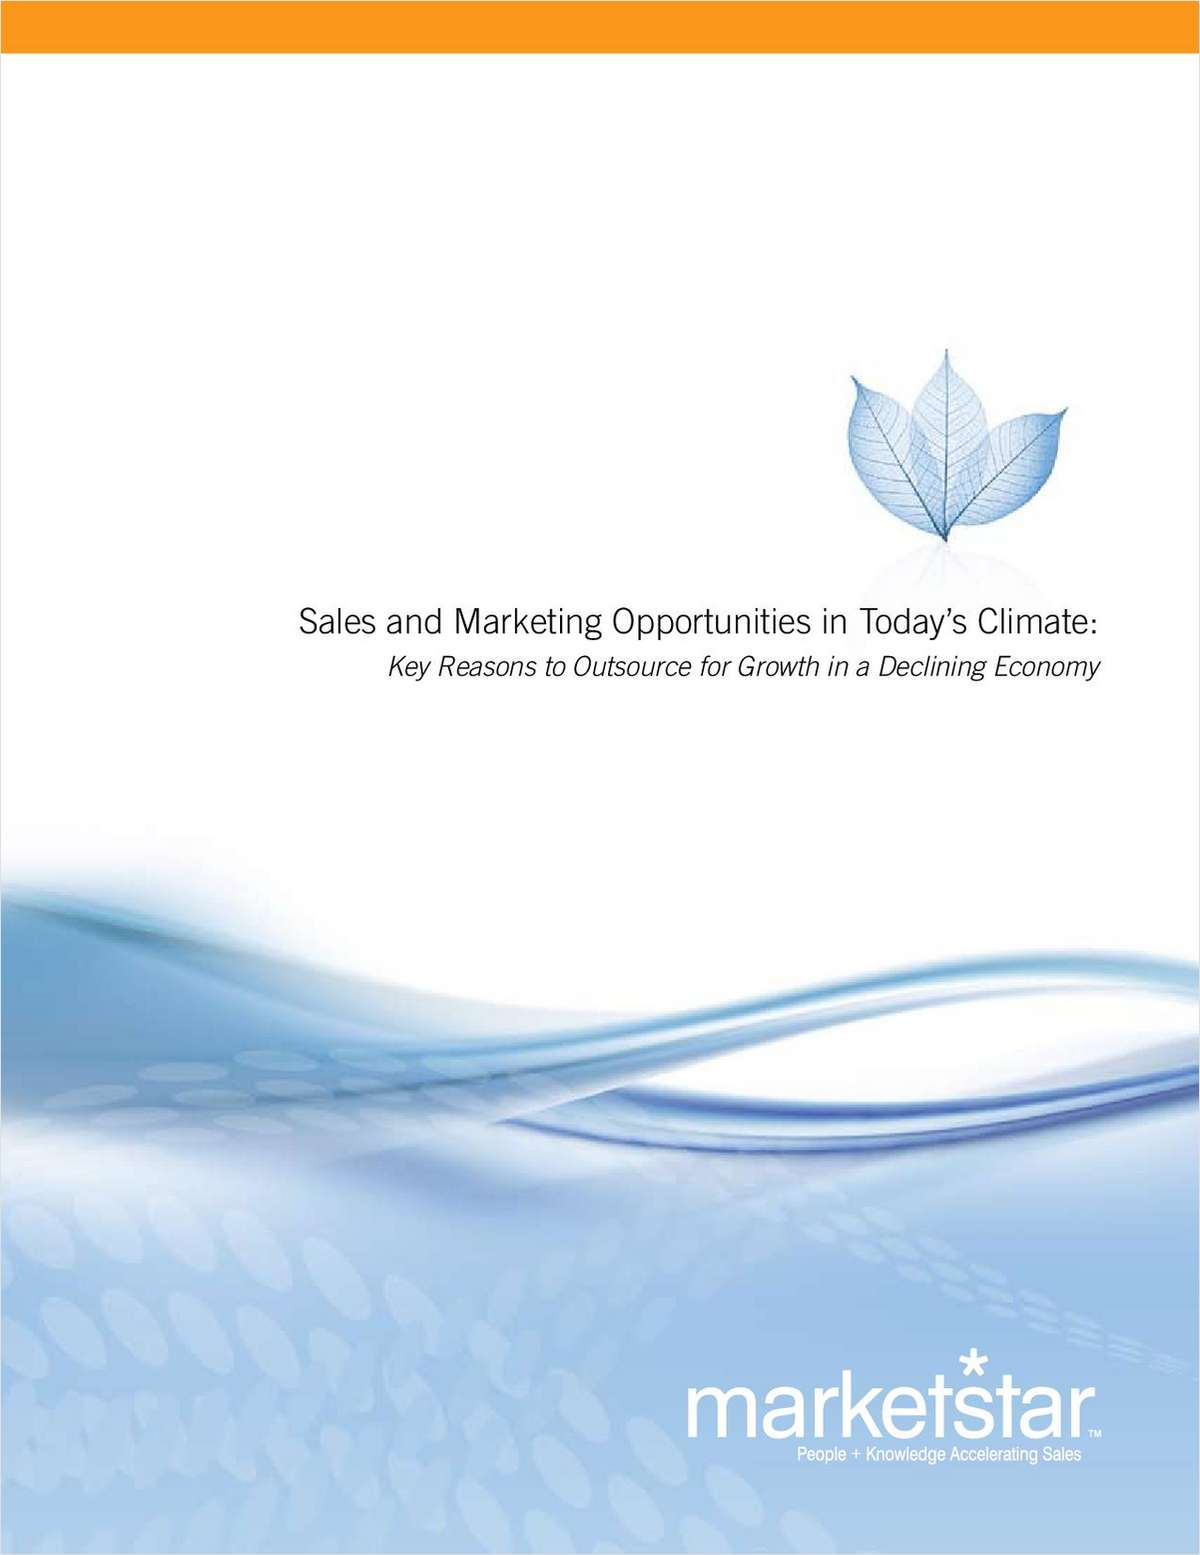 Sales and Marketing Opportunities in Today's Climate: Key Reasons to Outsource for Growth in a Declining Economy